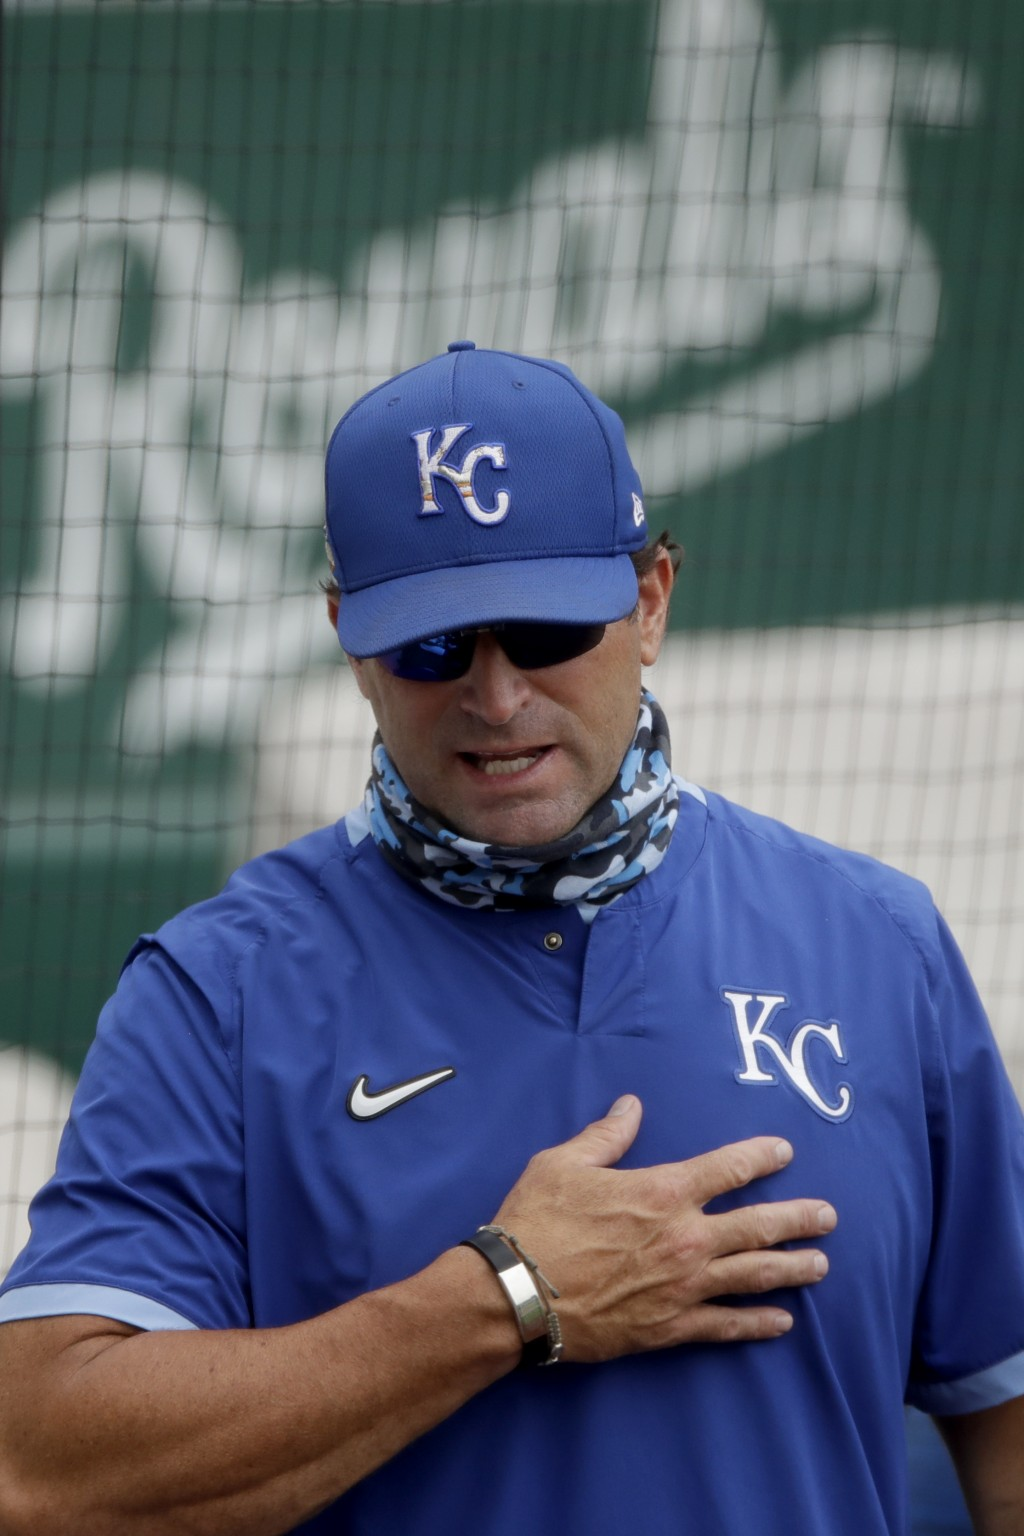 Kansas City Royals manager MIke Matheny talks to players during baseball practice at Kauffman Stadium, Thursday, July 16, 2020, in Kansas City, Mo. (A...